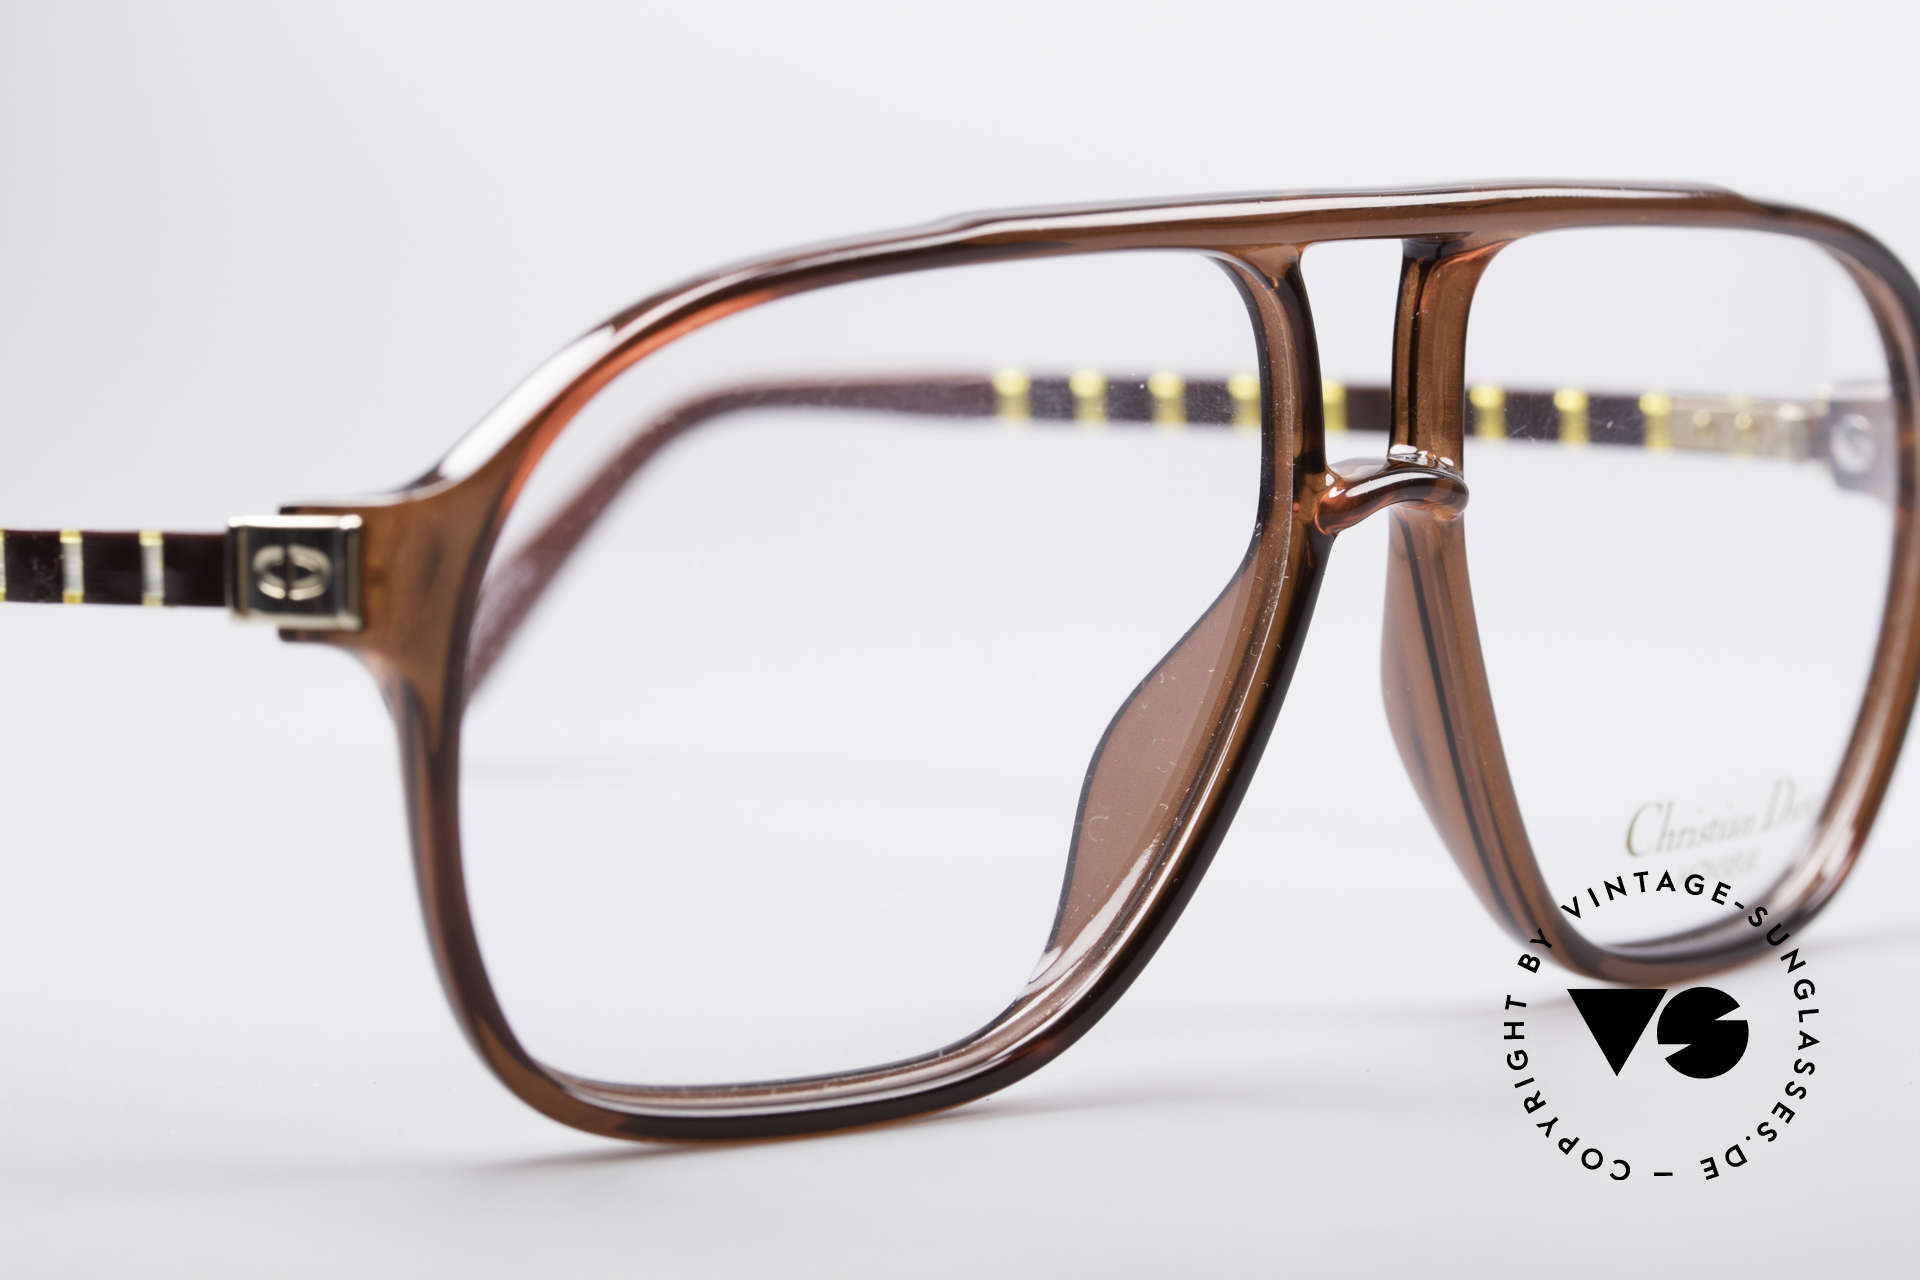 Christian Dior 2417 80's Men's Glasses Monsieur, never worn (like all our rare vintage Dior eyeglasses), Made for Men